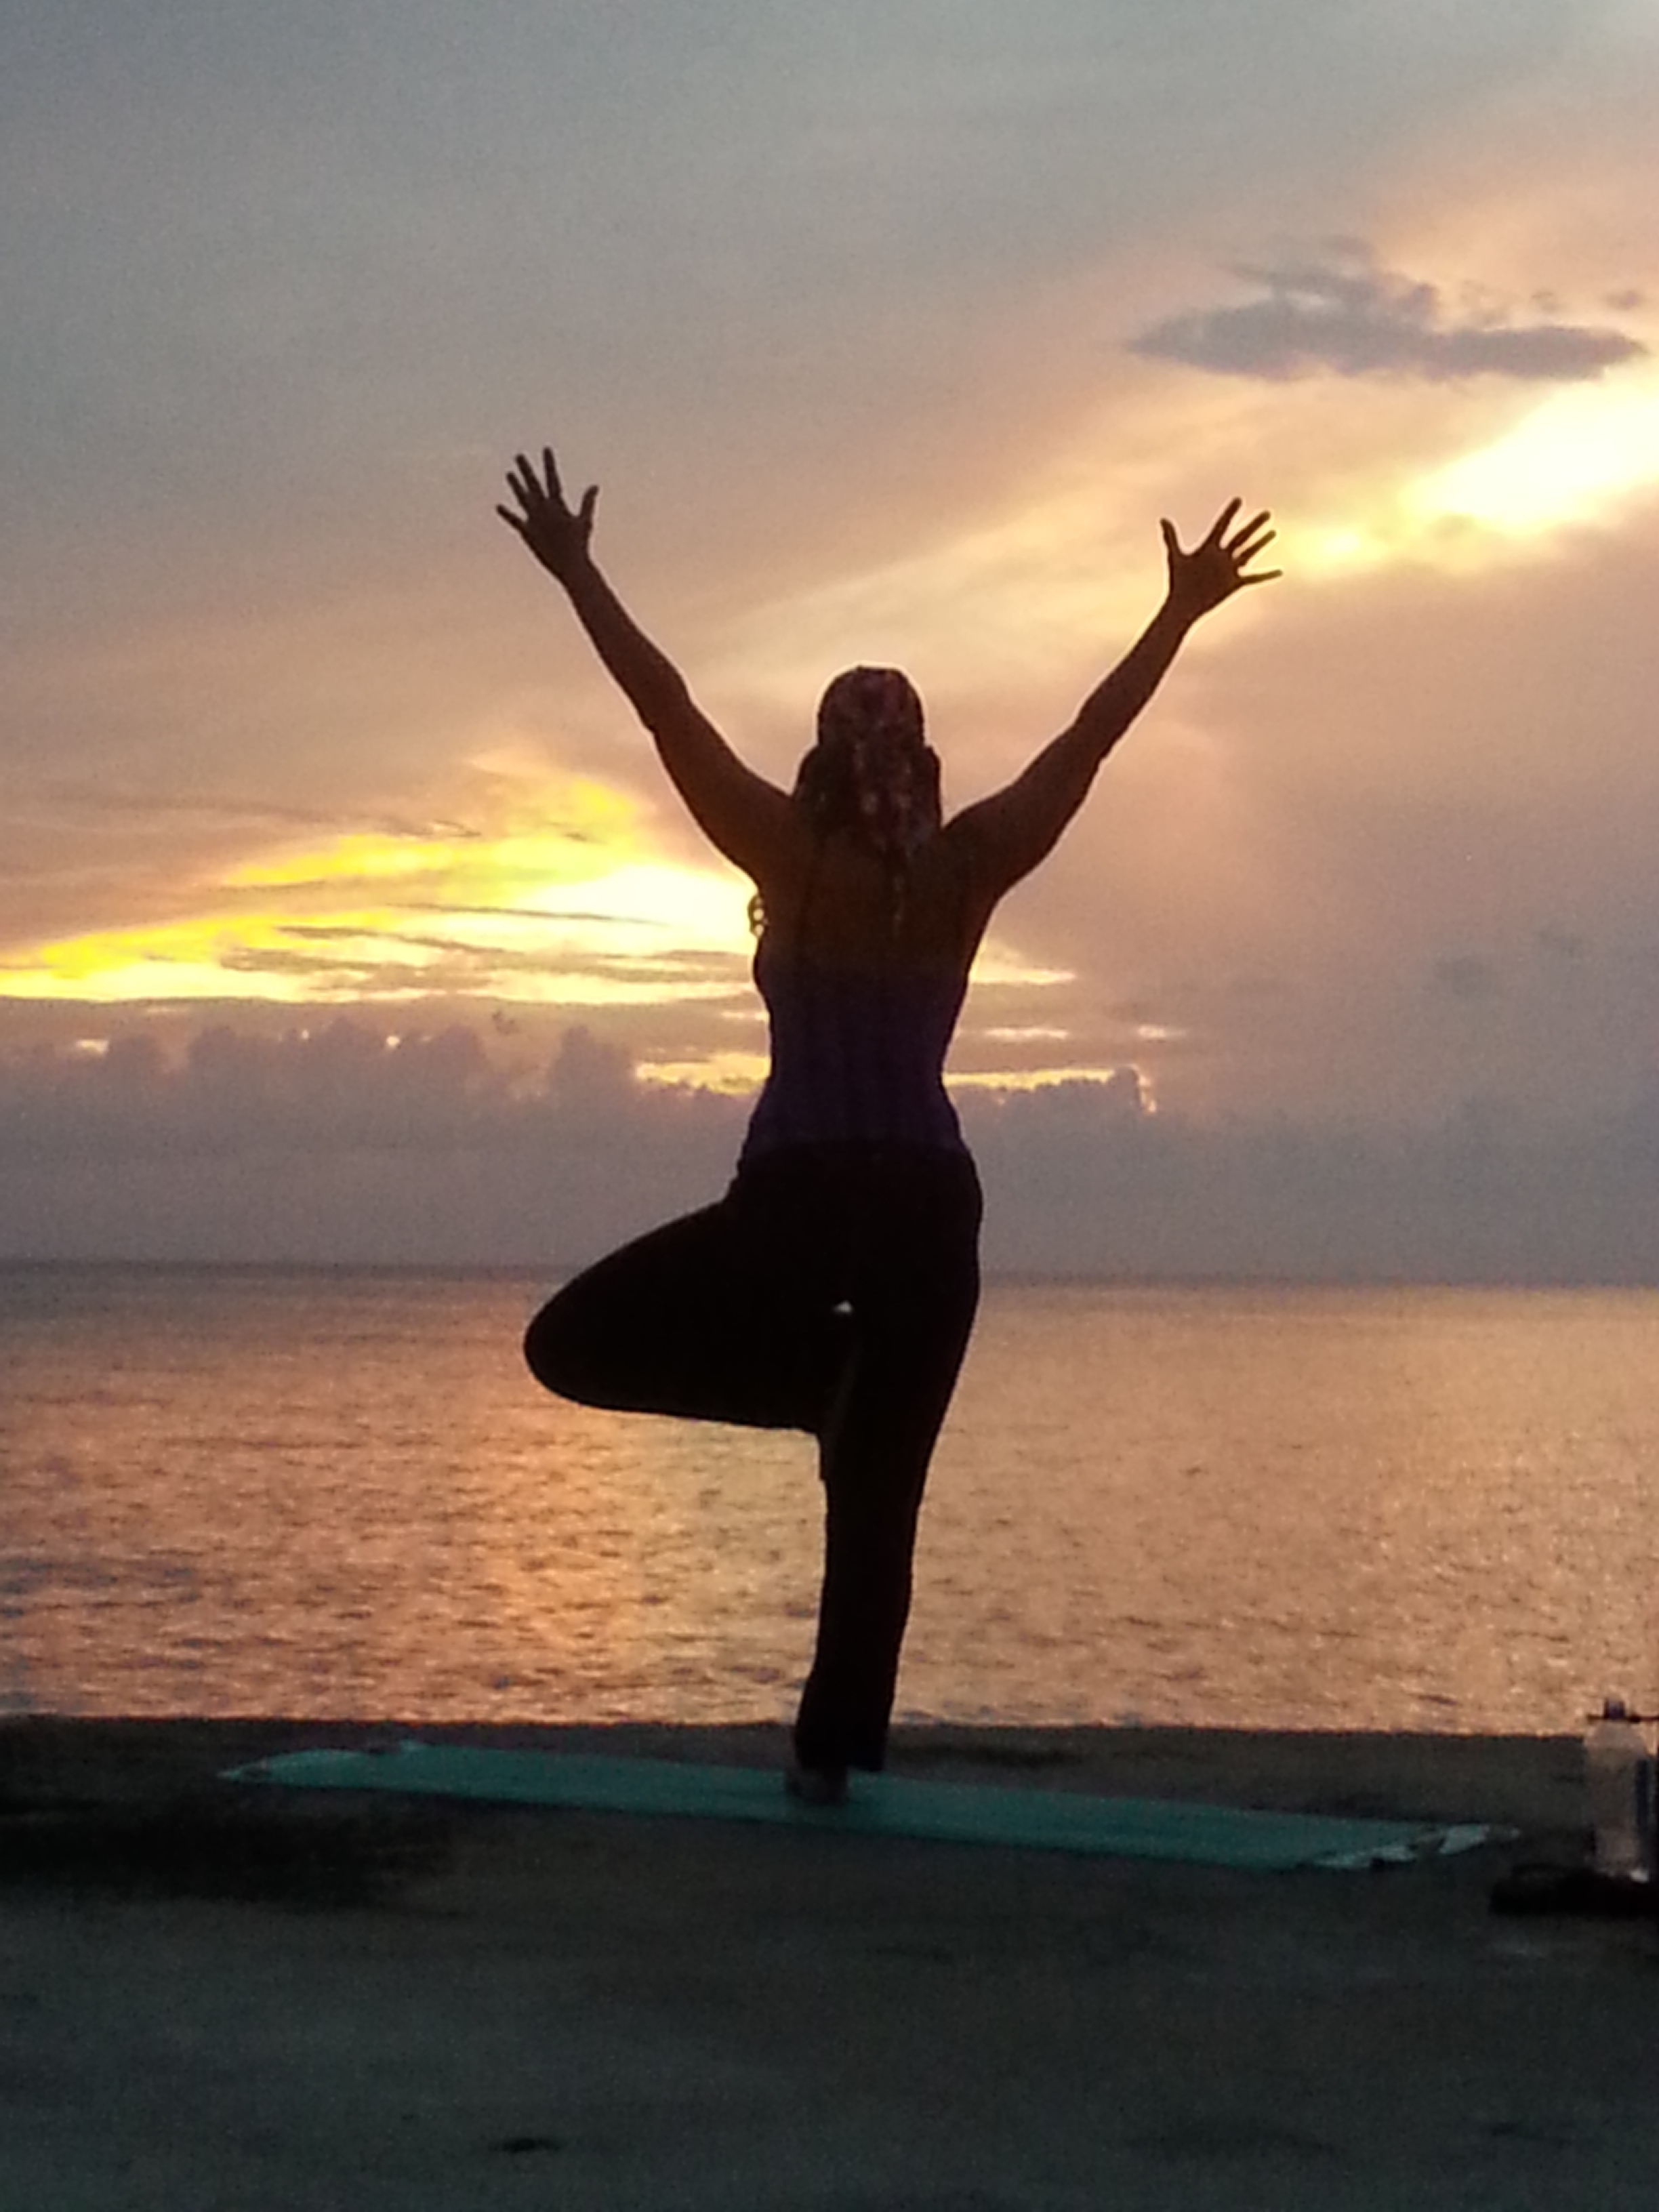 Suuz Yoga Tree Sunset Cozumel